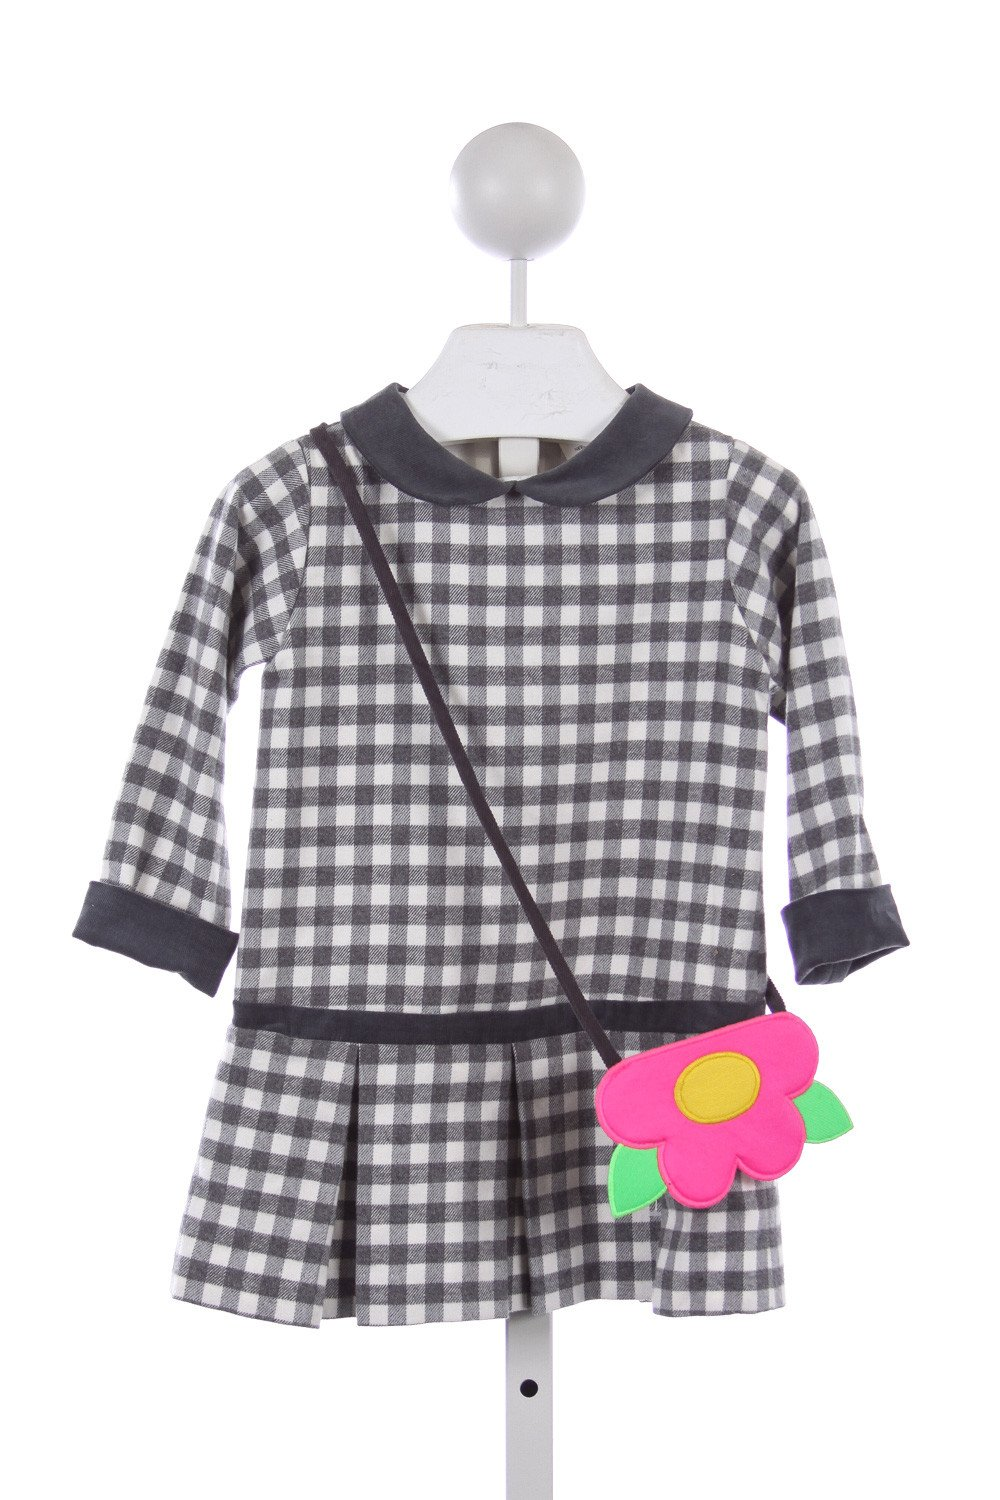 FLORENCE EISEMAN GRAY GINGHAM FLANNEL DRESS WITH FLOWER PURSE